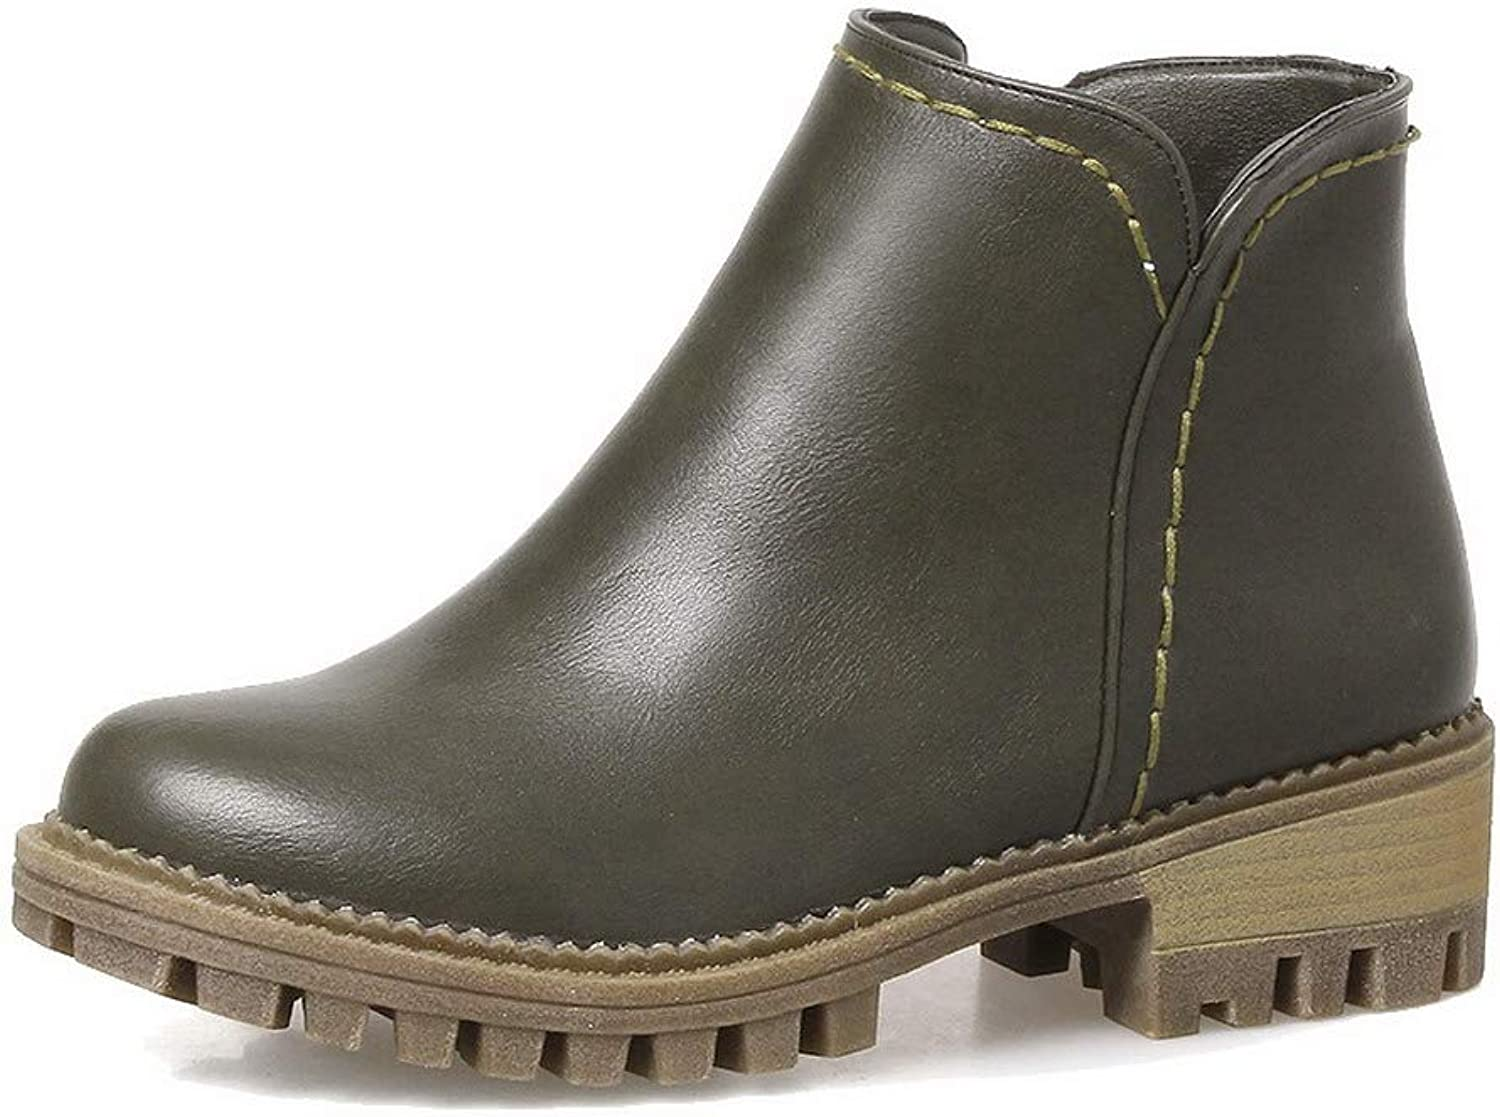 WeenFashion Women's Pu Closed-Toe Solid Low-Top Low-Heels Boots, AMGXX119801